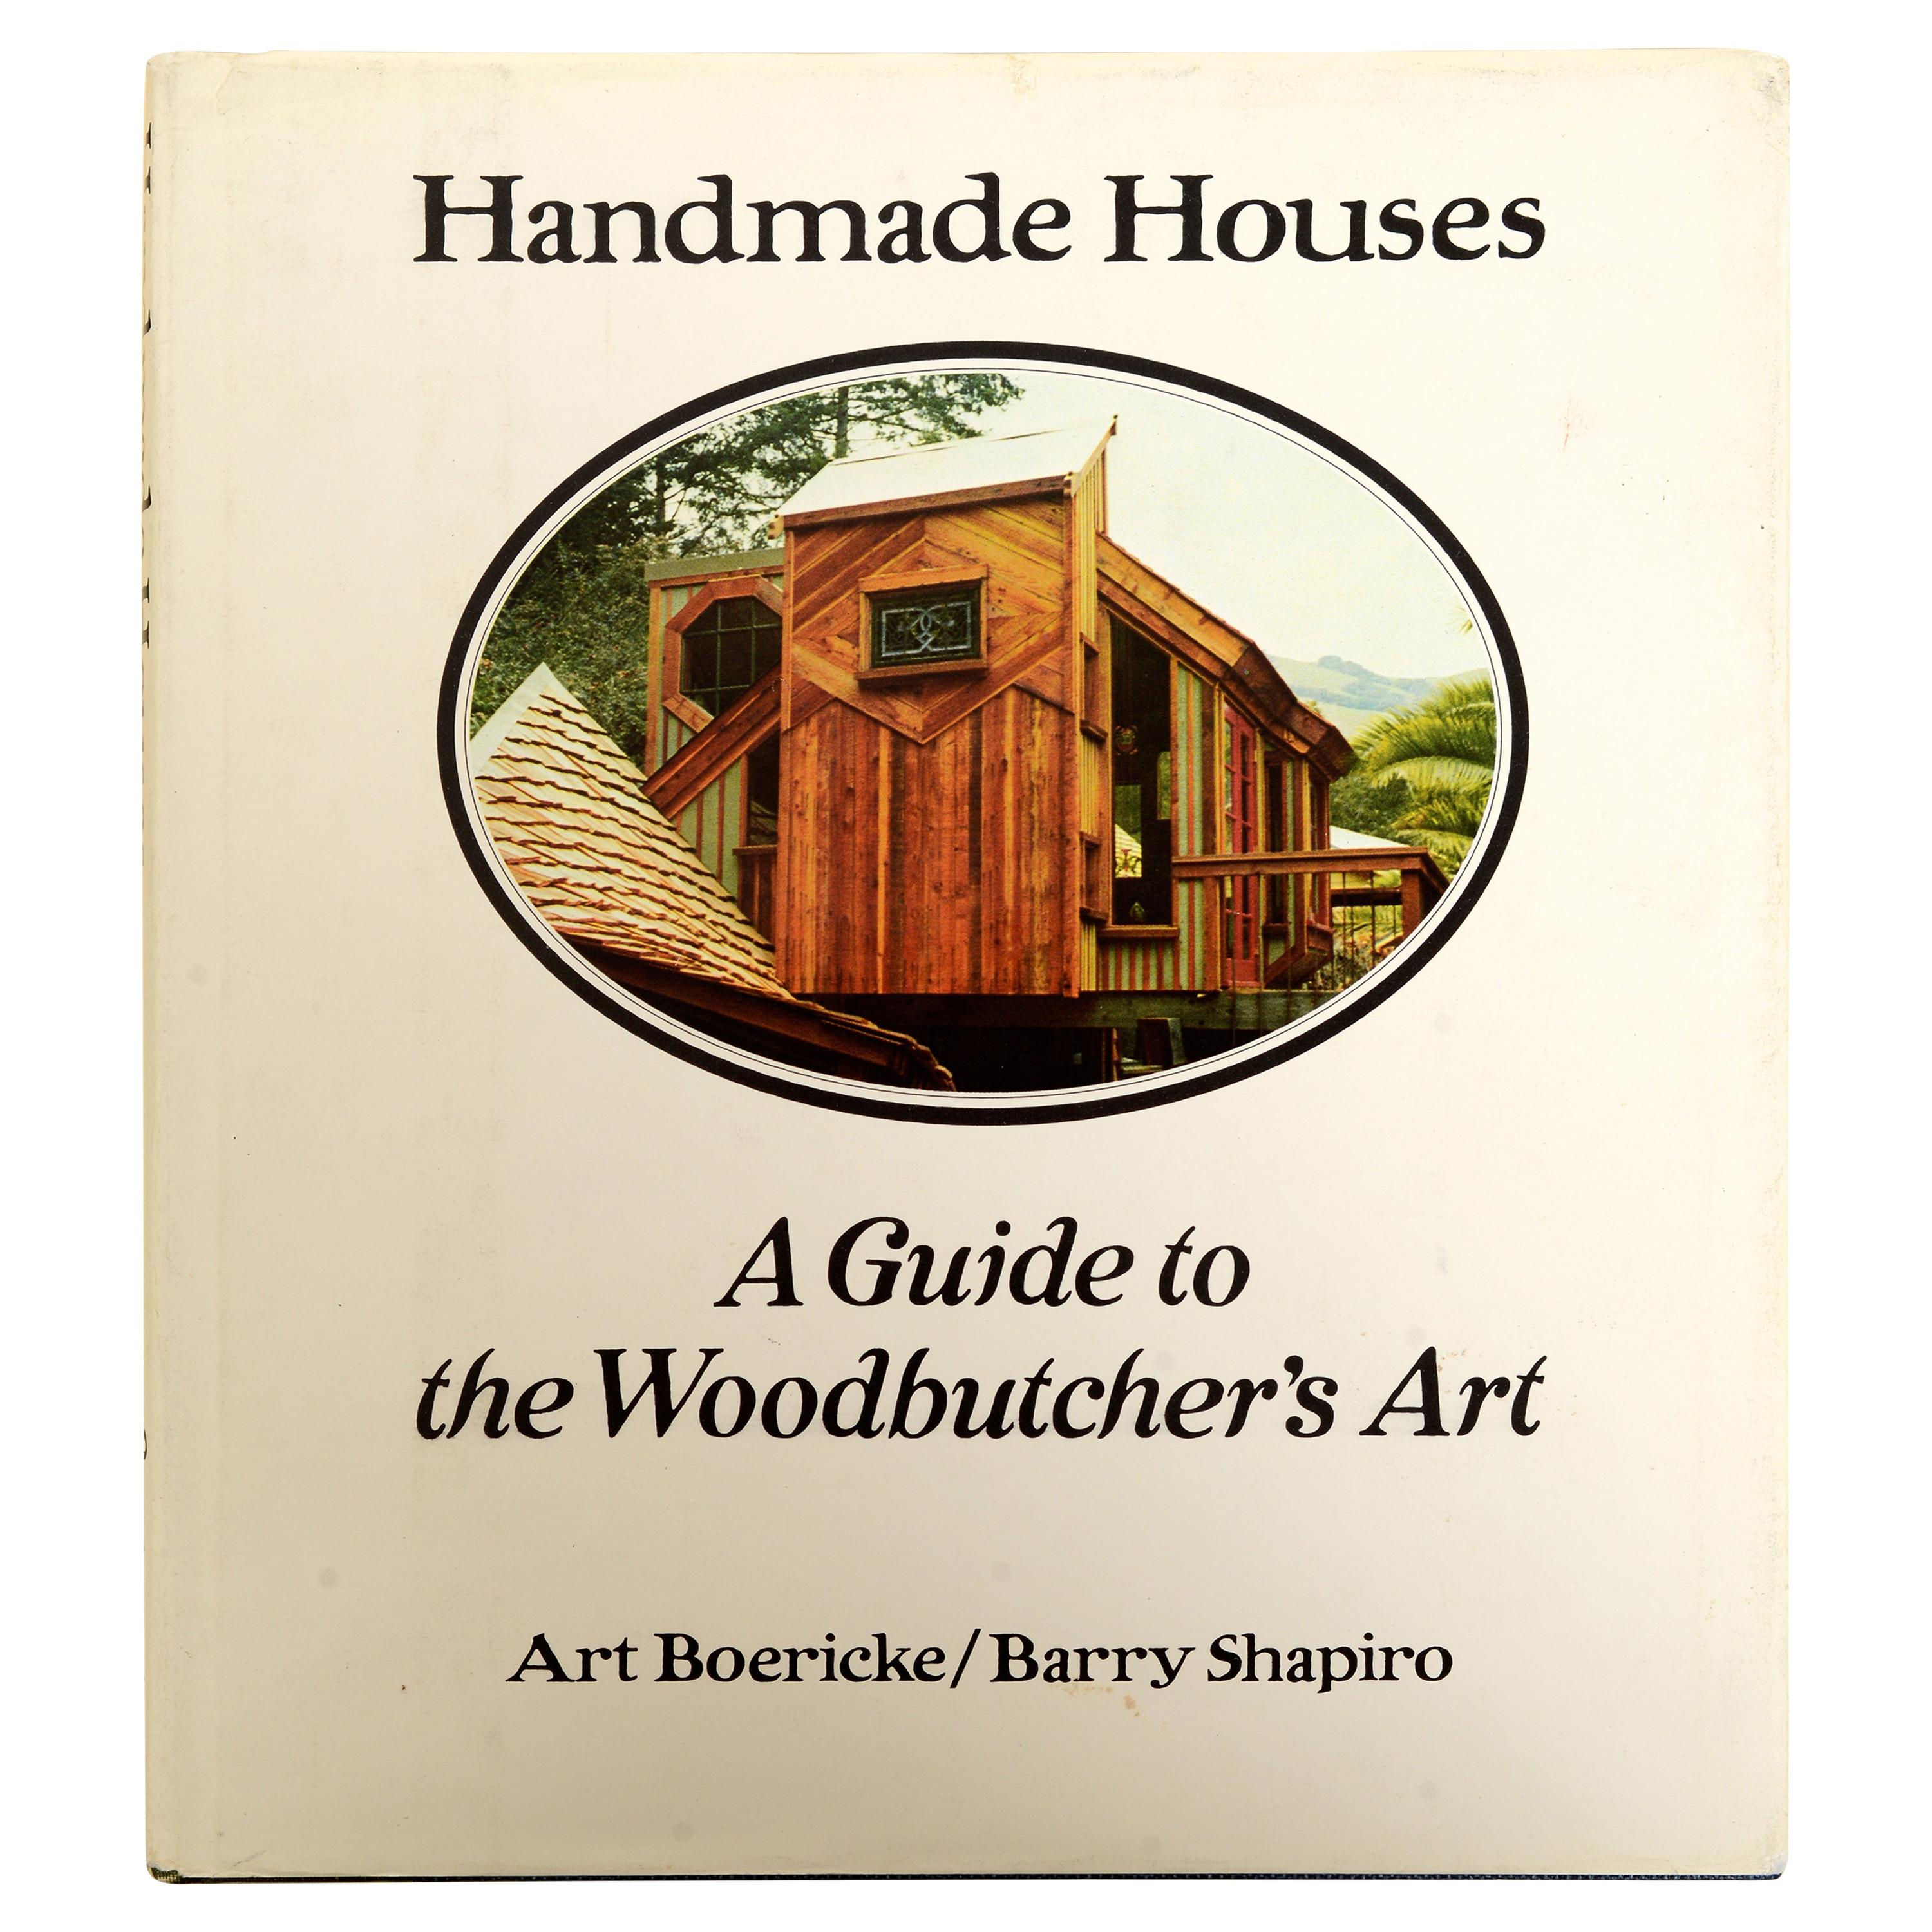 Handmade Houses A Guide to the Woodbutcher's Art by Art Boericke